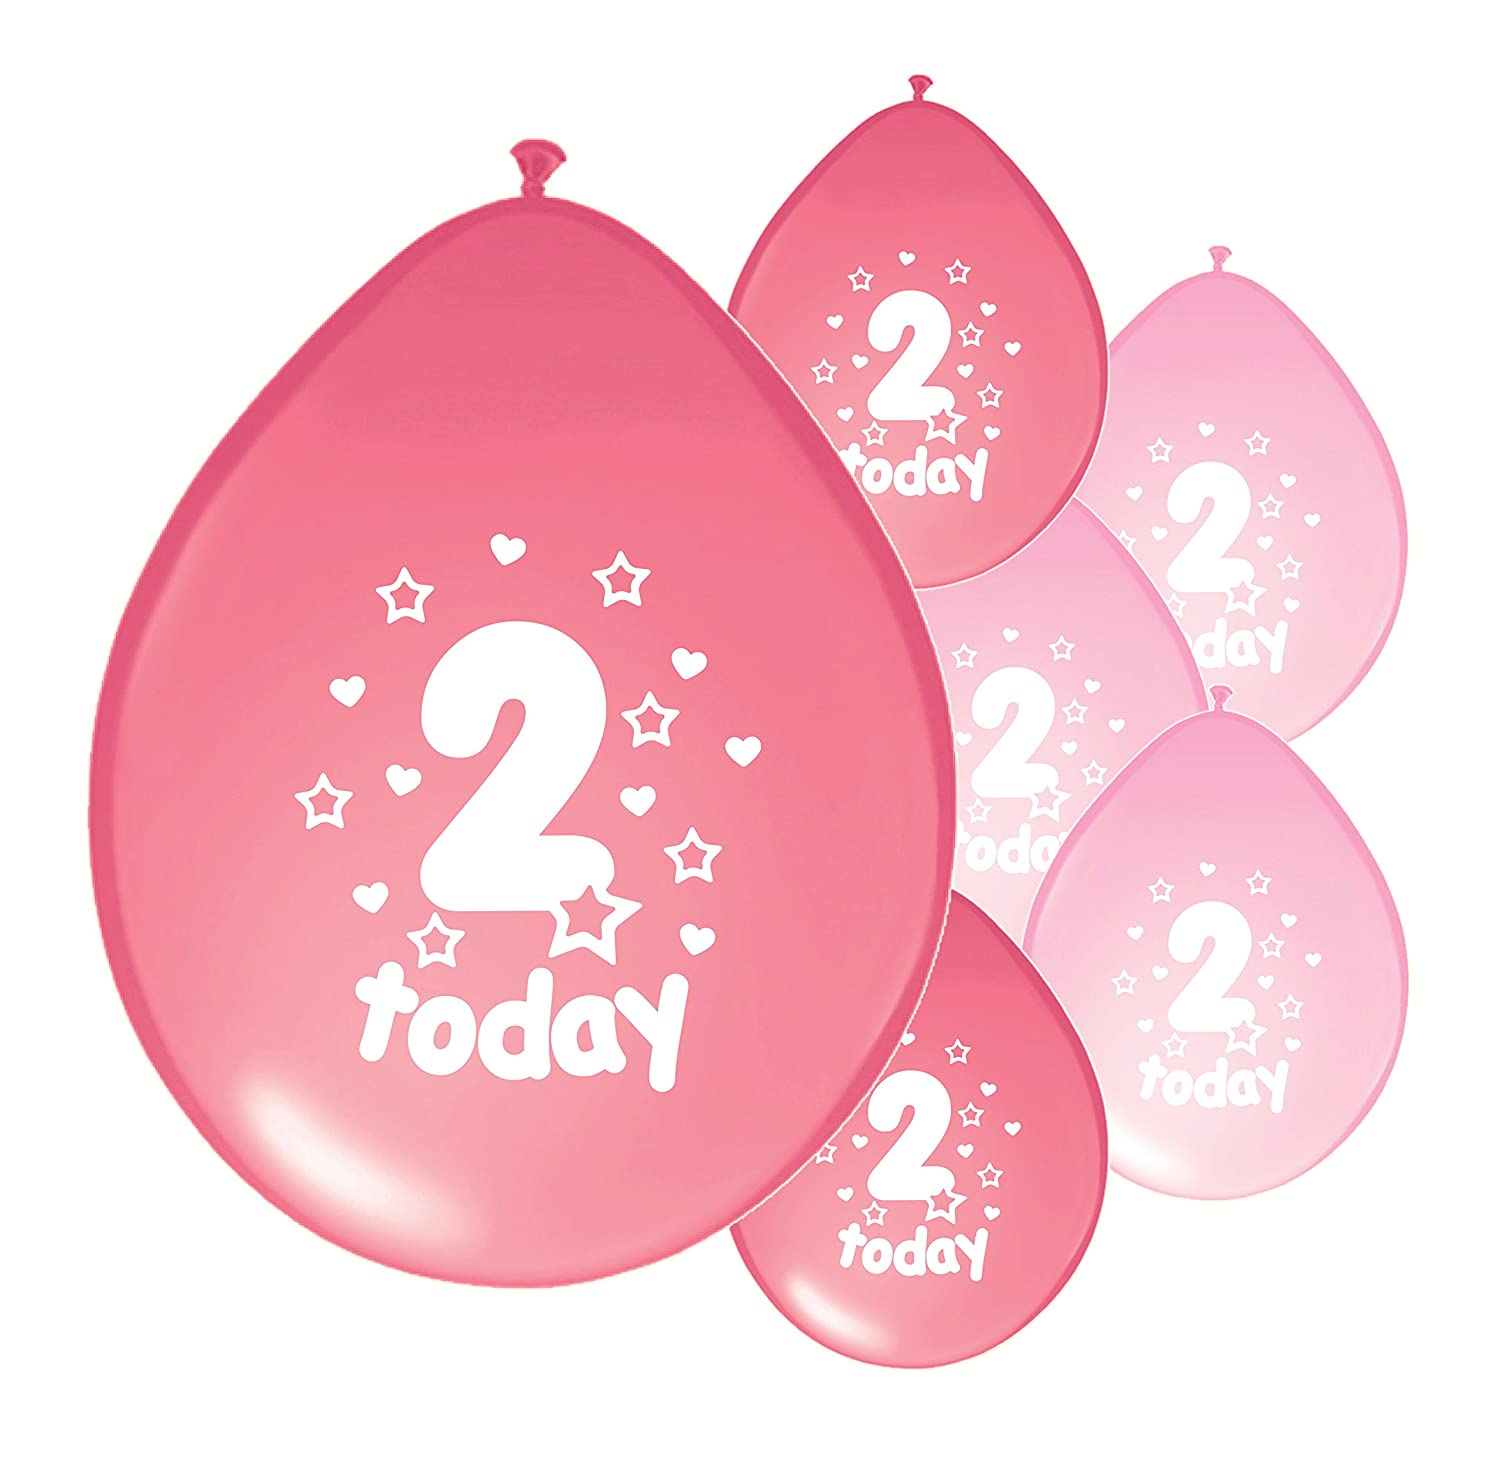 10 x 2ND BIRTHDAY GIRL AGE 2 GIRL LIGHT PINK AND PINK MIX PACK